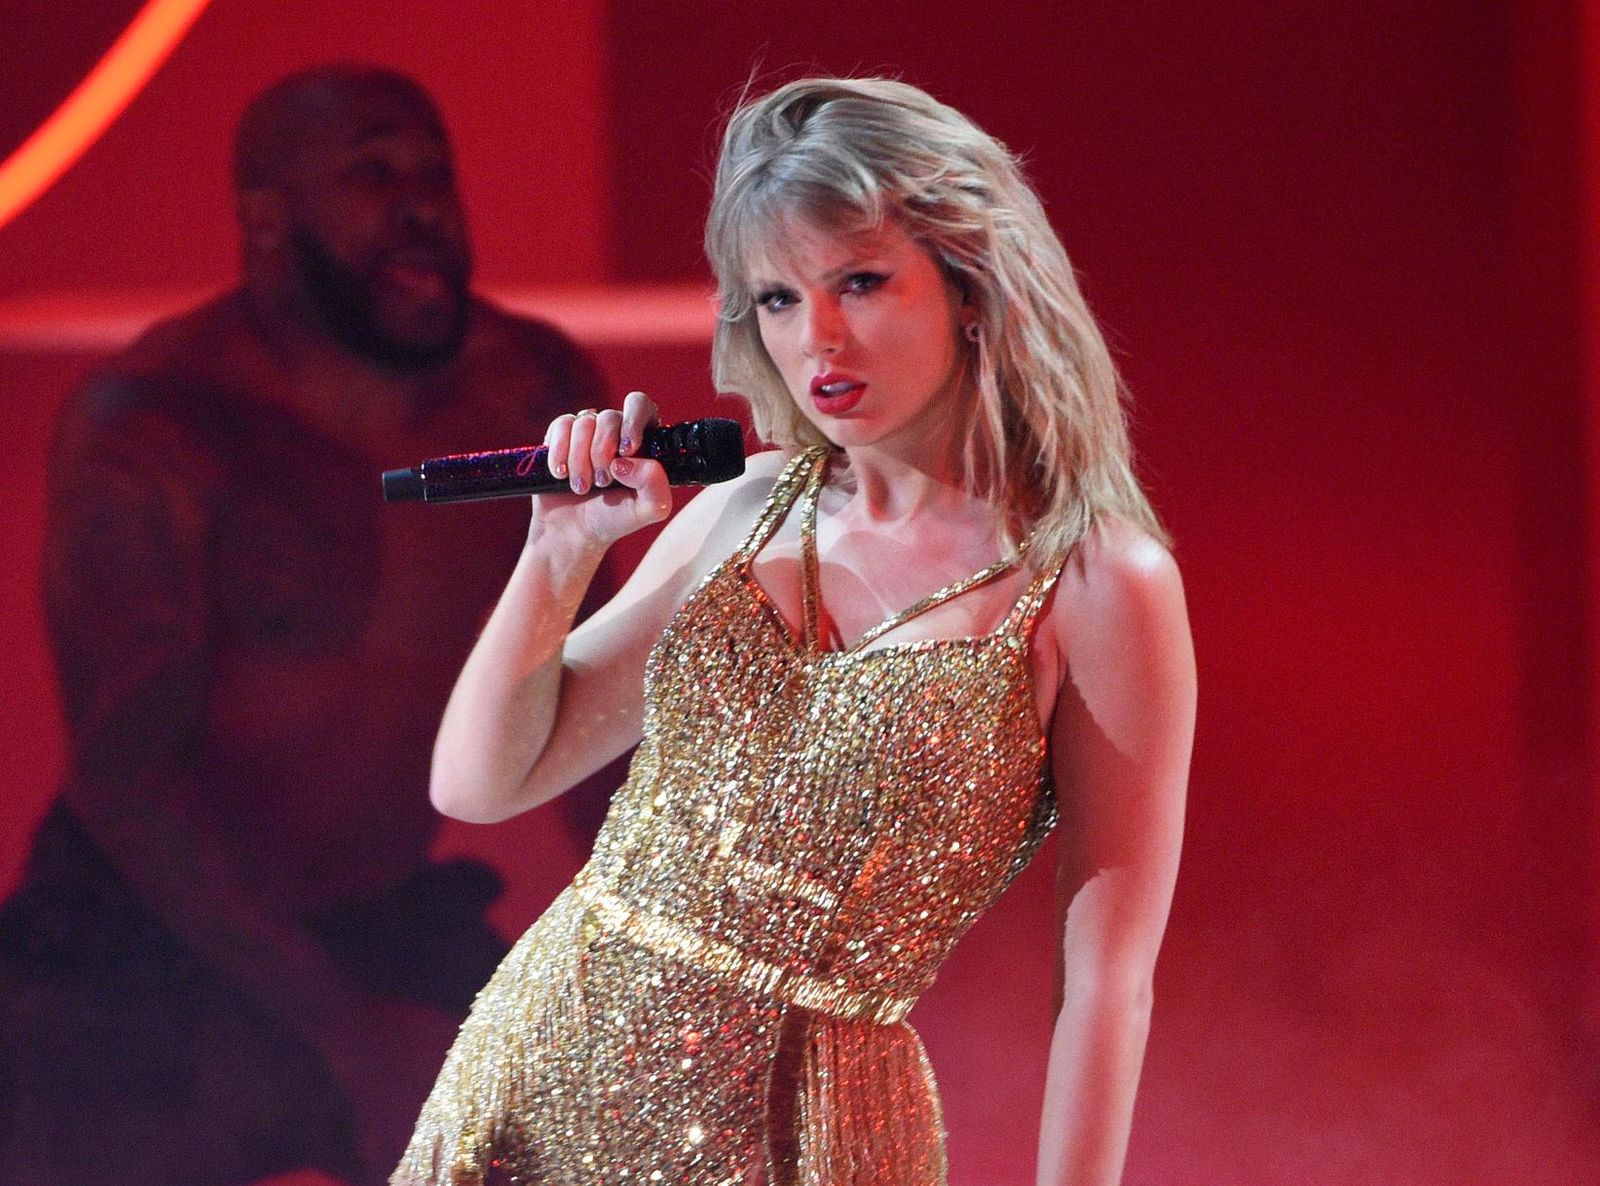 FILE - This Nov. 24, 2019 file photo shows Taylor Swift performing at the American Music Awards in Los Angeles. A documentary on Swift will kickoff the next Sundance Film Festival. (Photo by Chris Pizzello/Invision/AP, File)